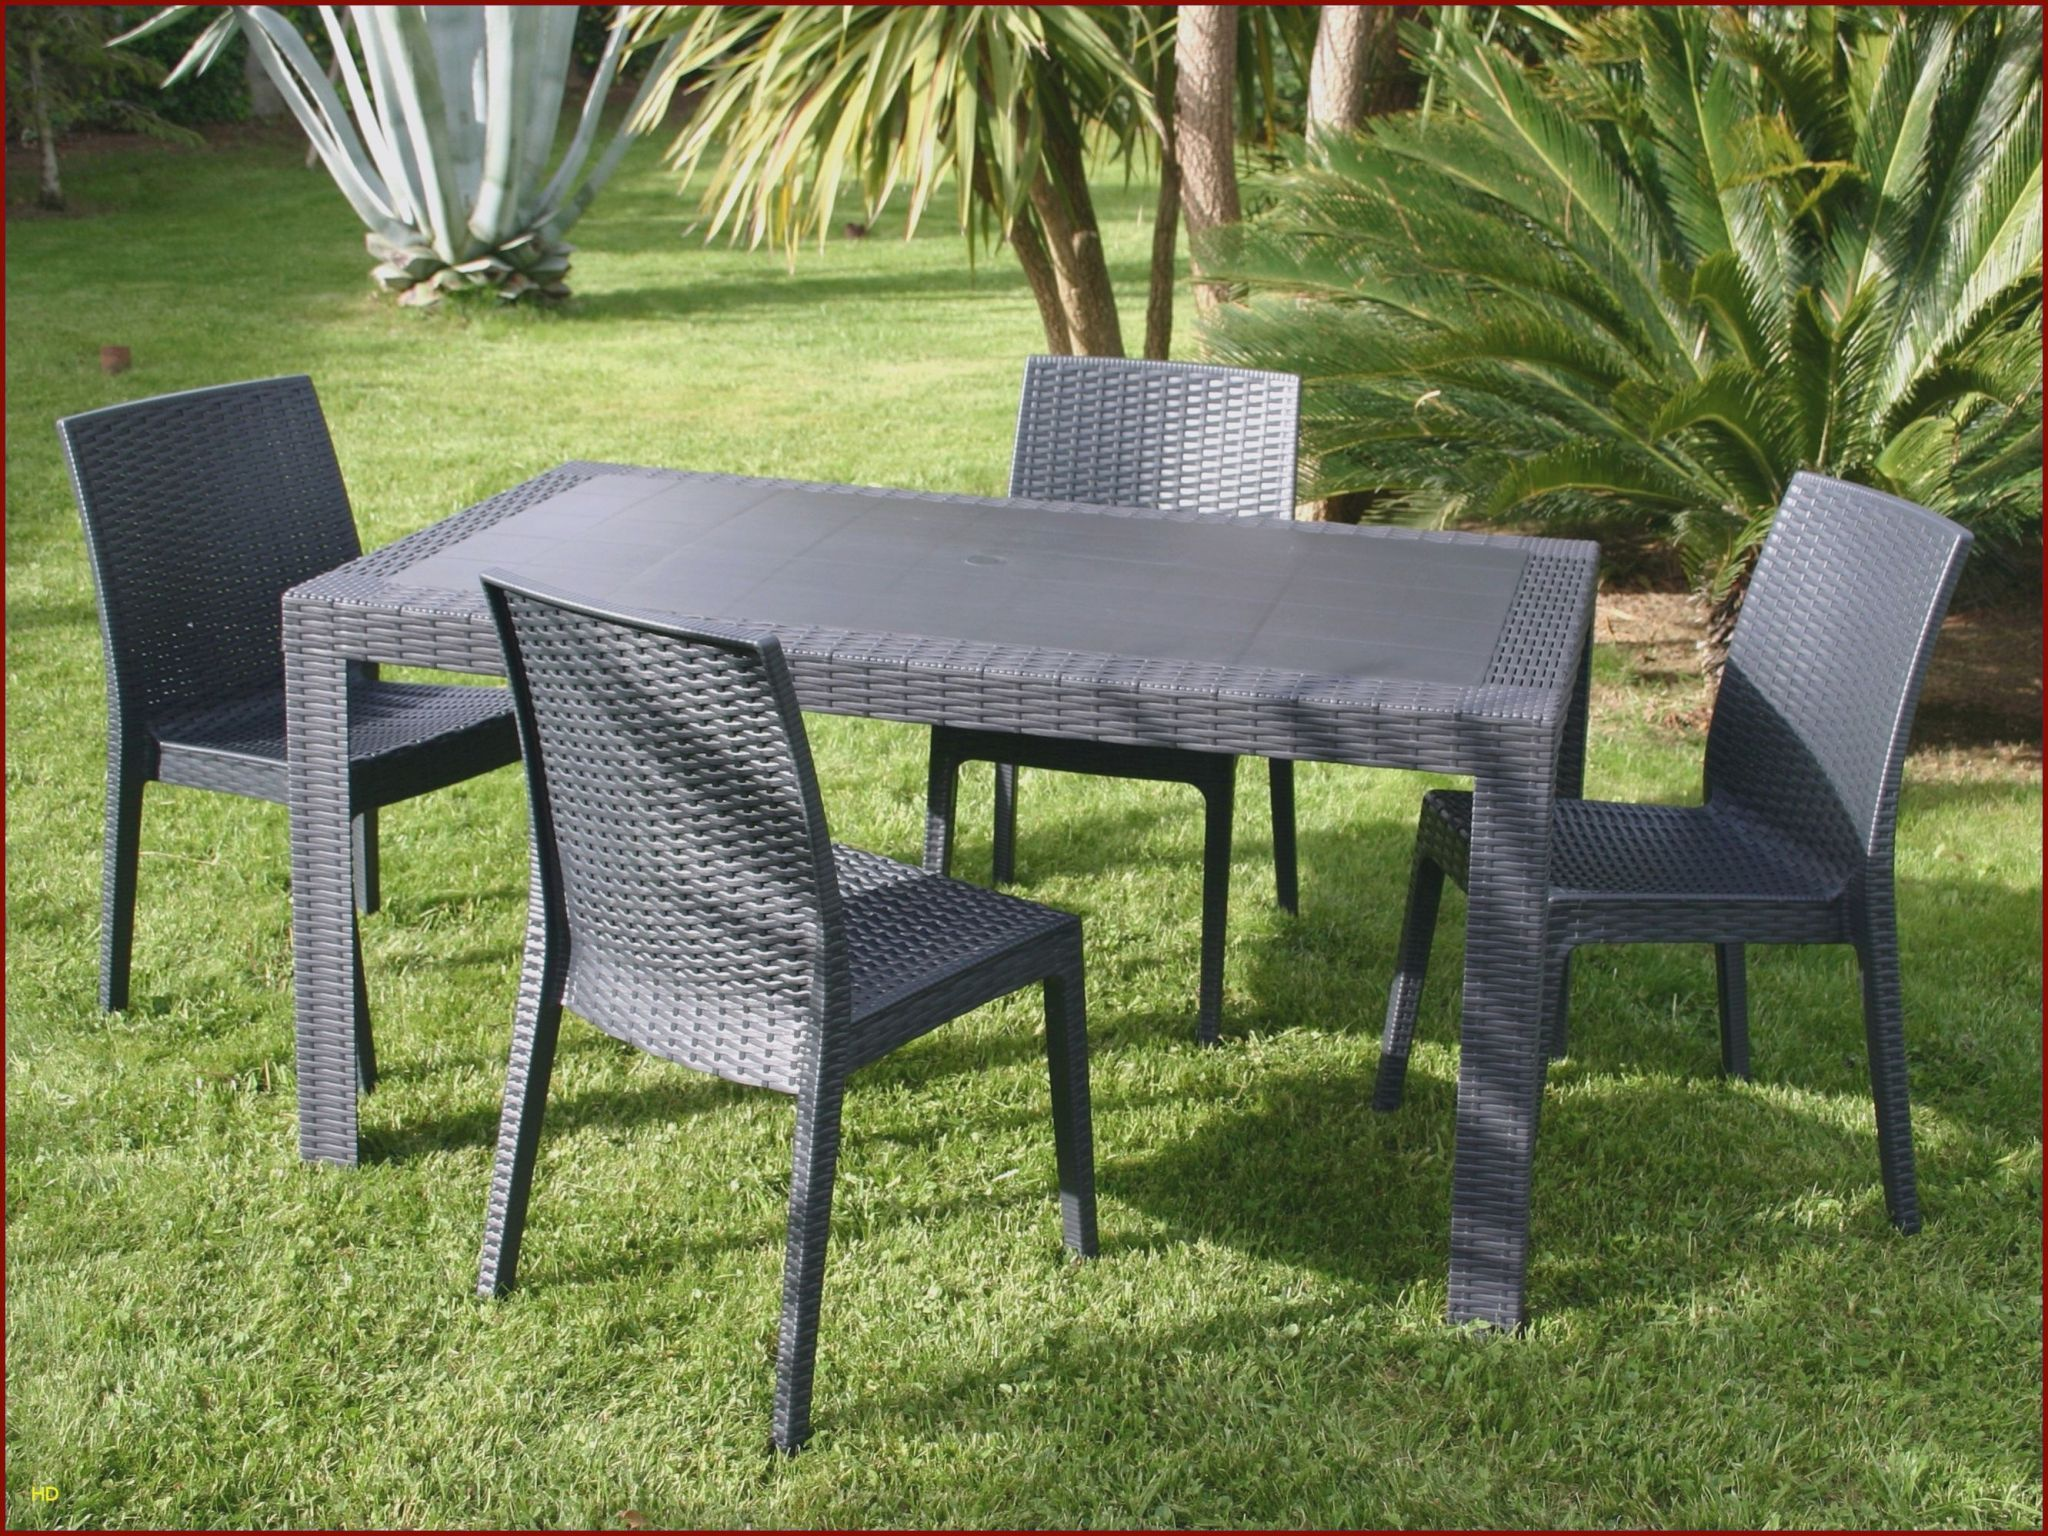 Chaise Bistrot Bois Pas Cher Élégant Chaises Luxe Chaise Ice 0d Table Jardin Resine Lovely